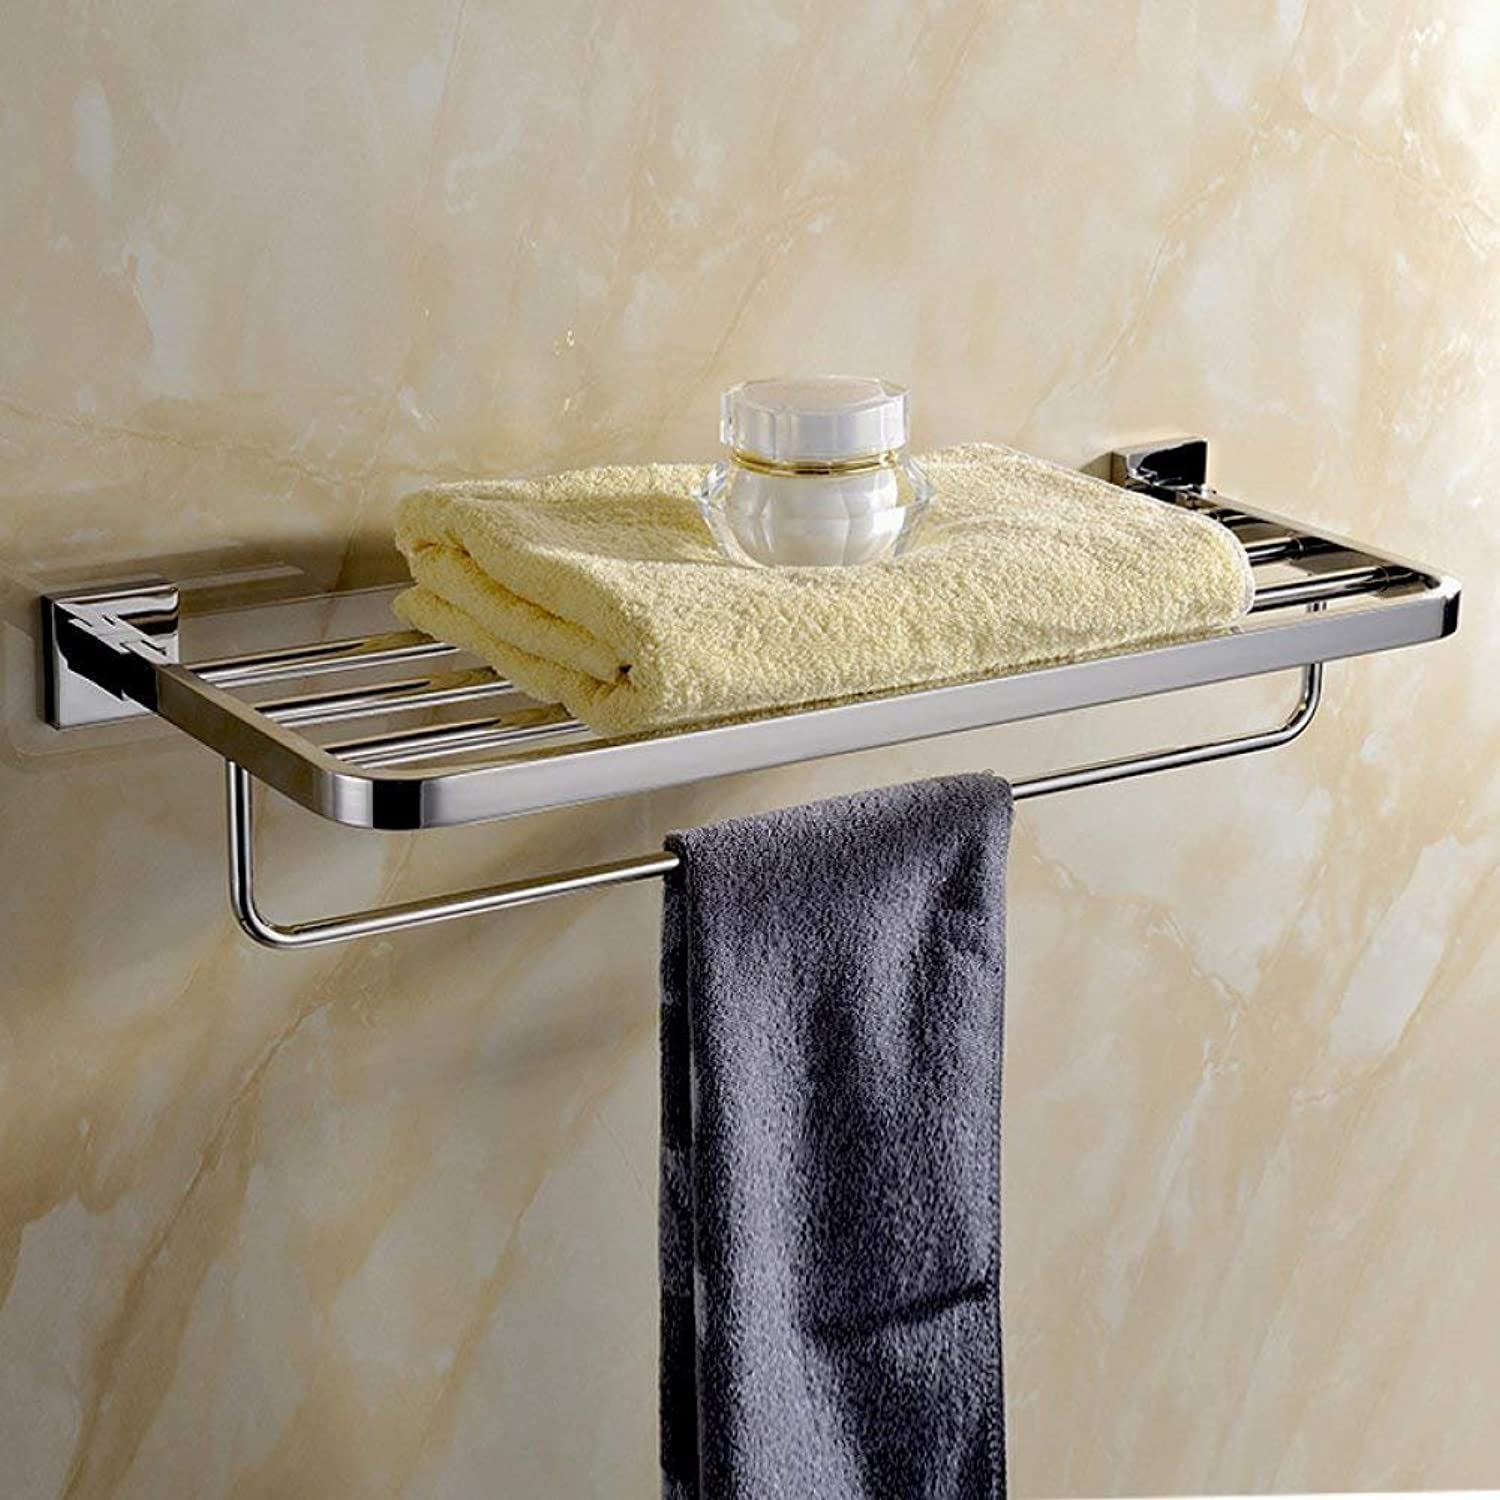 Bathroom Dry-Towels Square, Wall Bracket in Stainless Steel with Door Handle Frame-Towels Anti-Corrosion